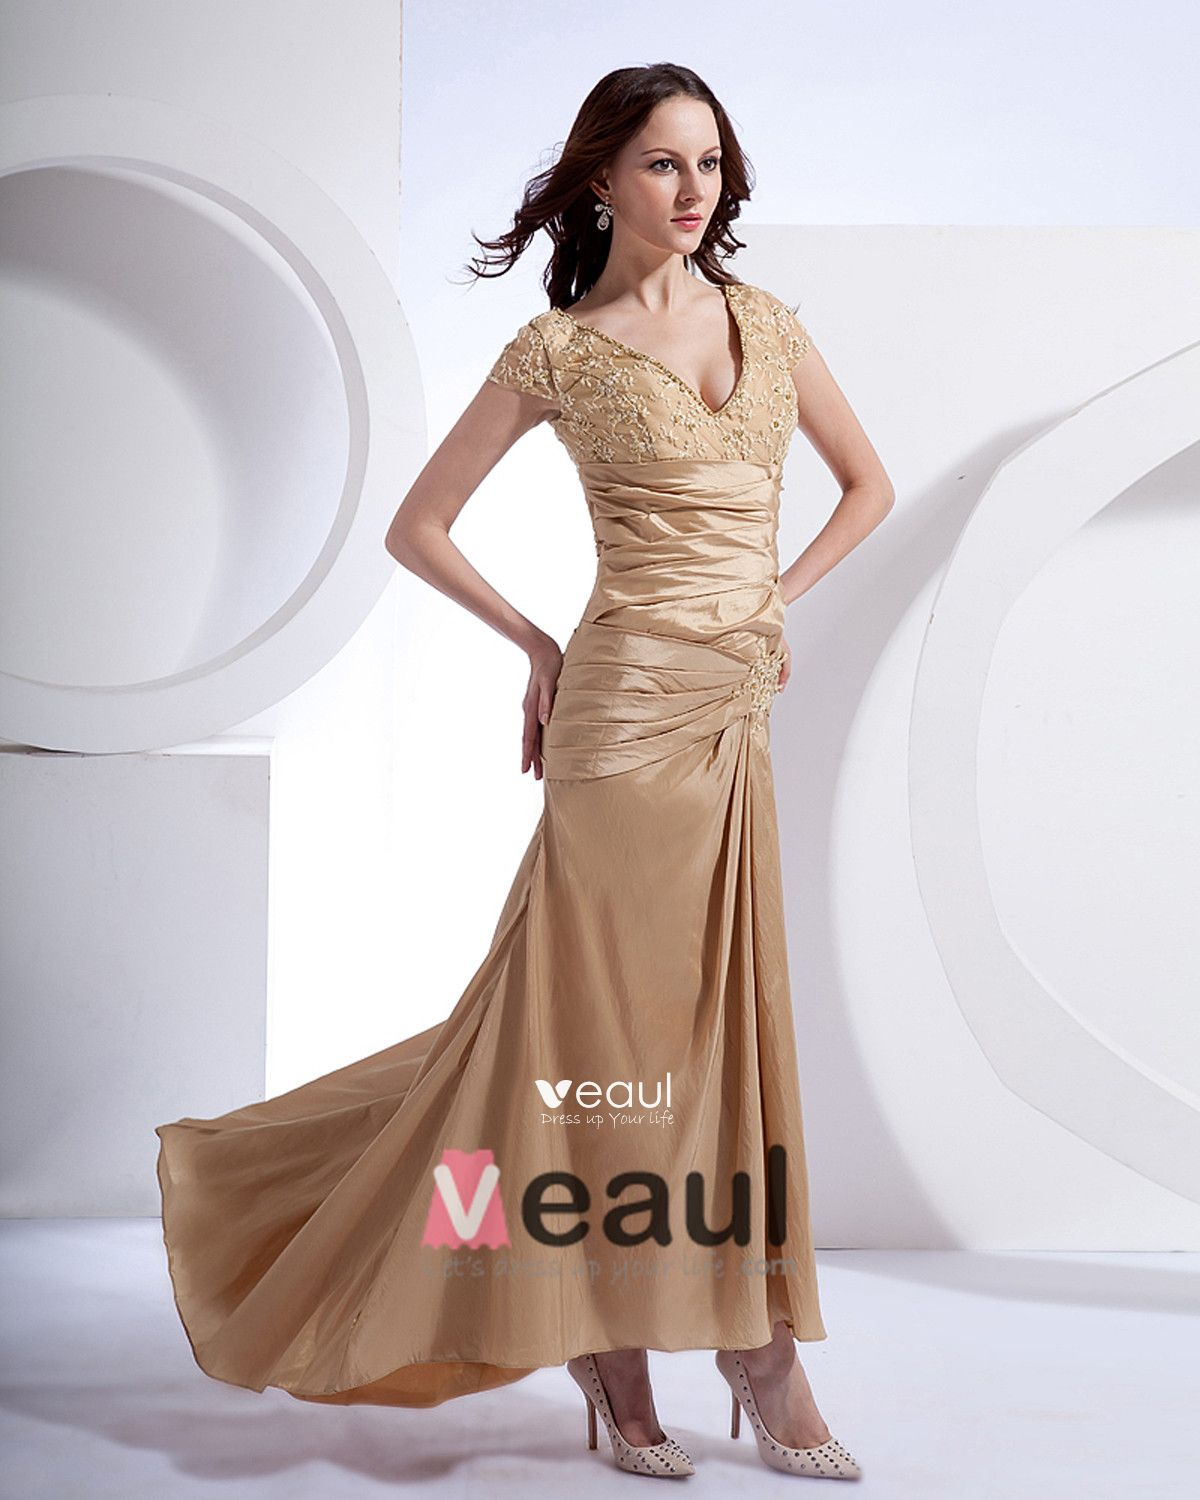 Absorbing V-Neck Floor Length Taffeta Applique Beading Mothers of Bride Special Guests Dress